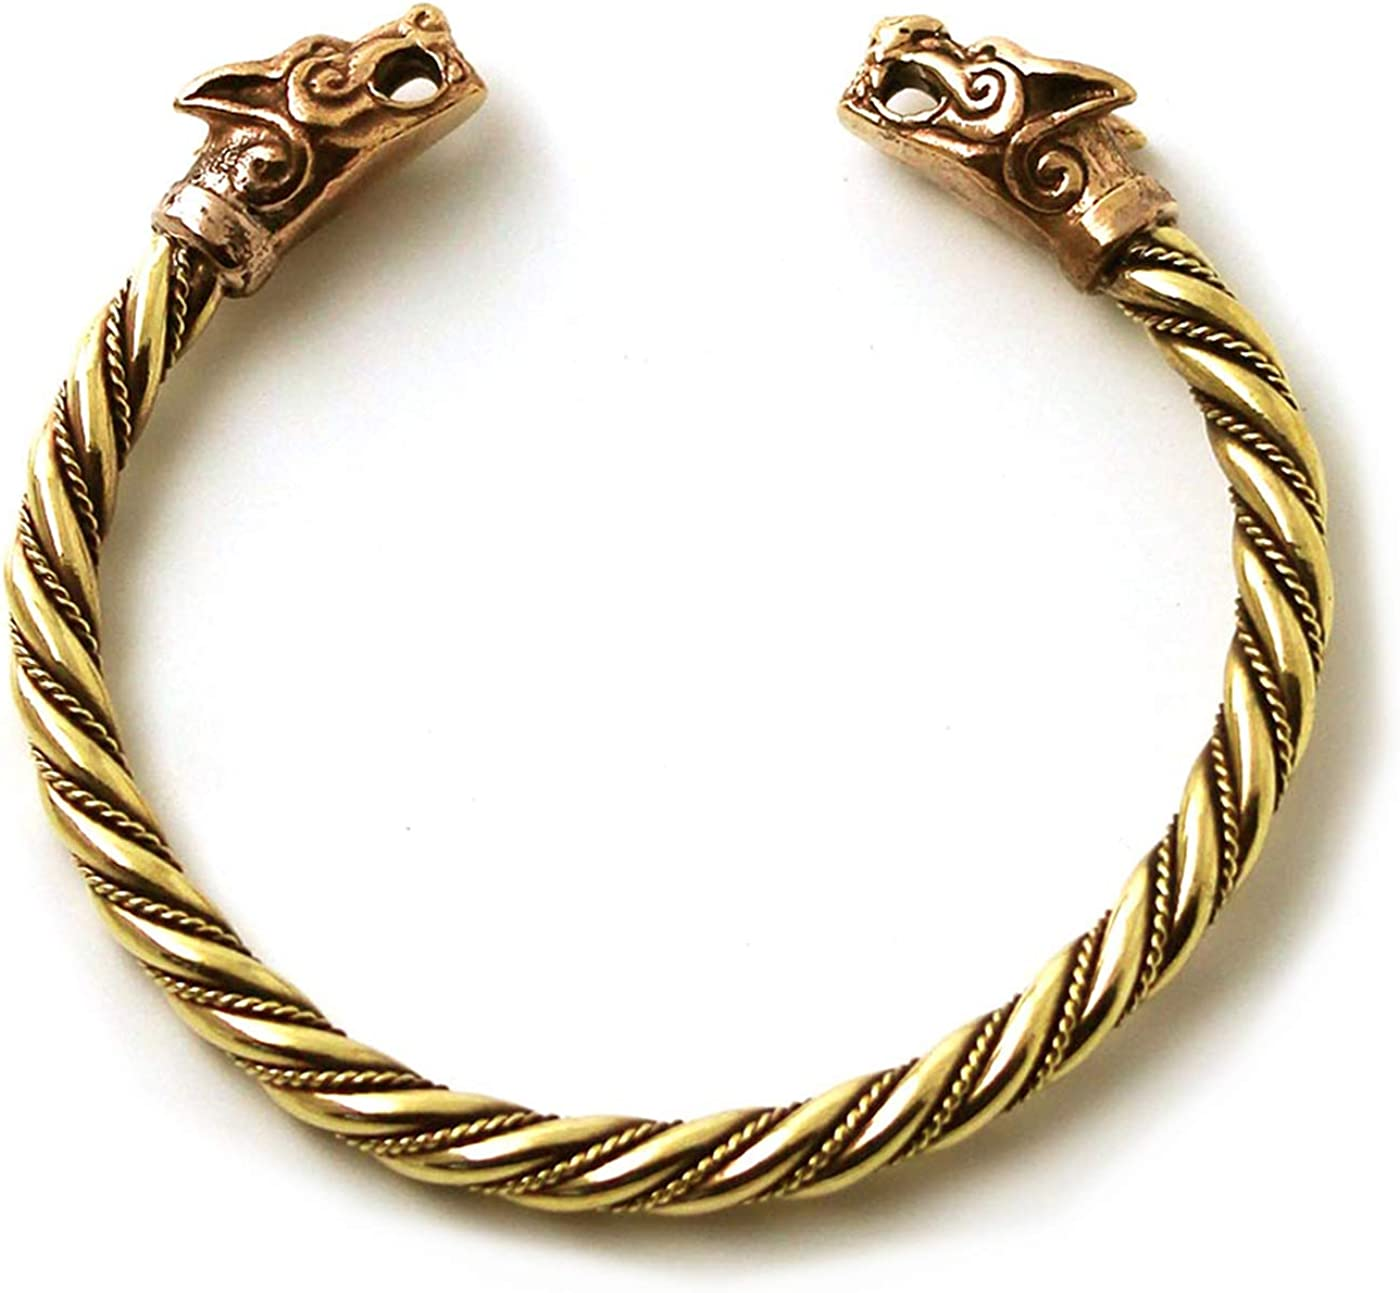 LynnAround Bronze Norse Viking Fenrir Wolf Head Twisted Cable Bangle Cuff Bracelet Arm Ring Pagan Jewelry